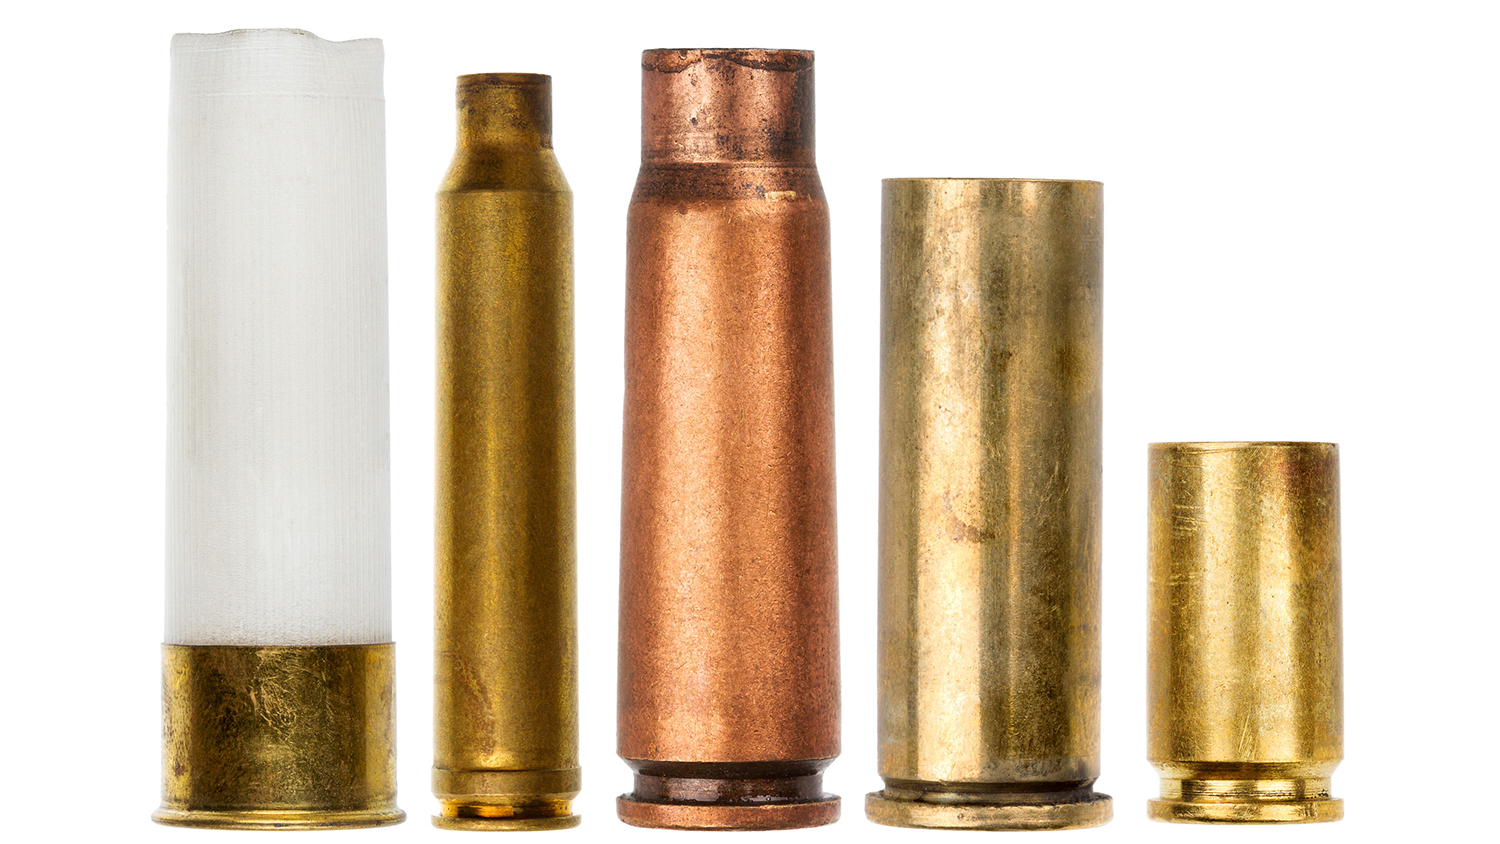 Celebrate Earth Day with these 9 Bullet Inspired DIY Crafts